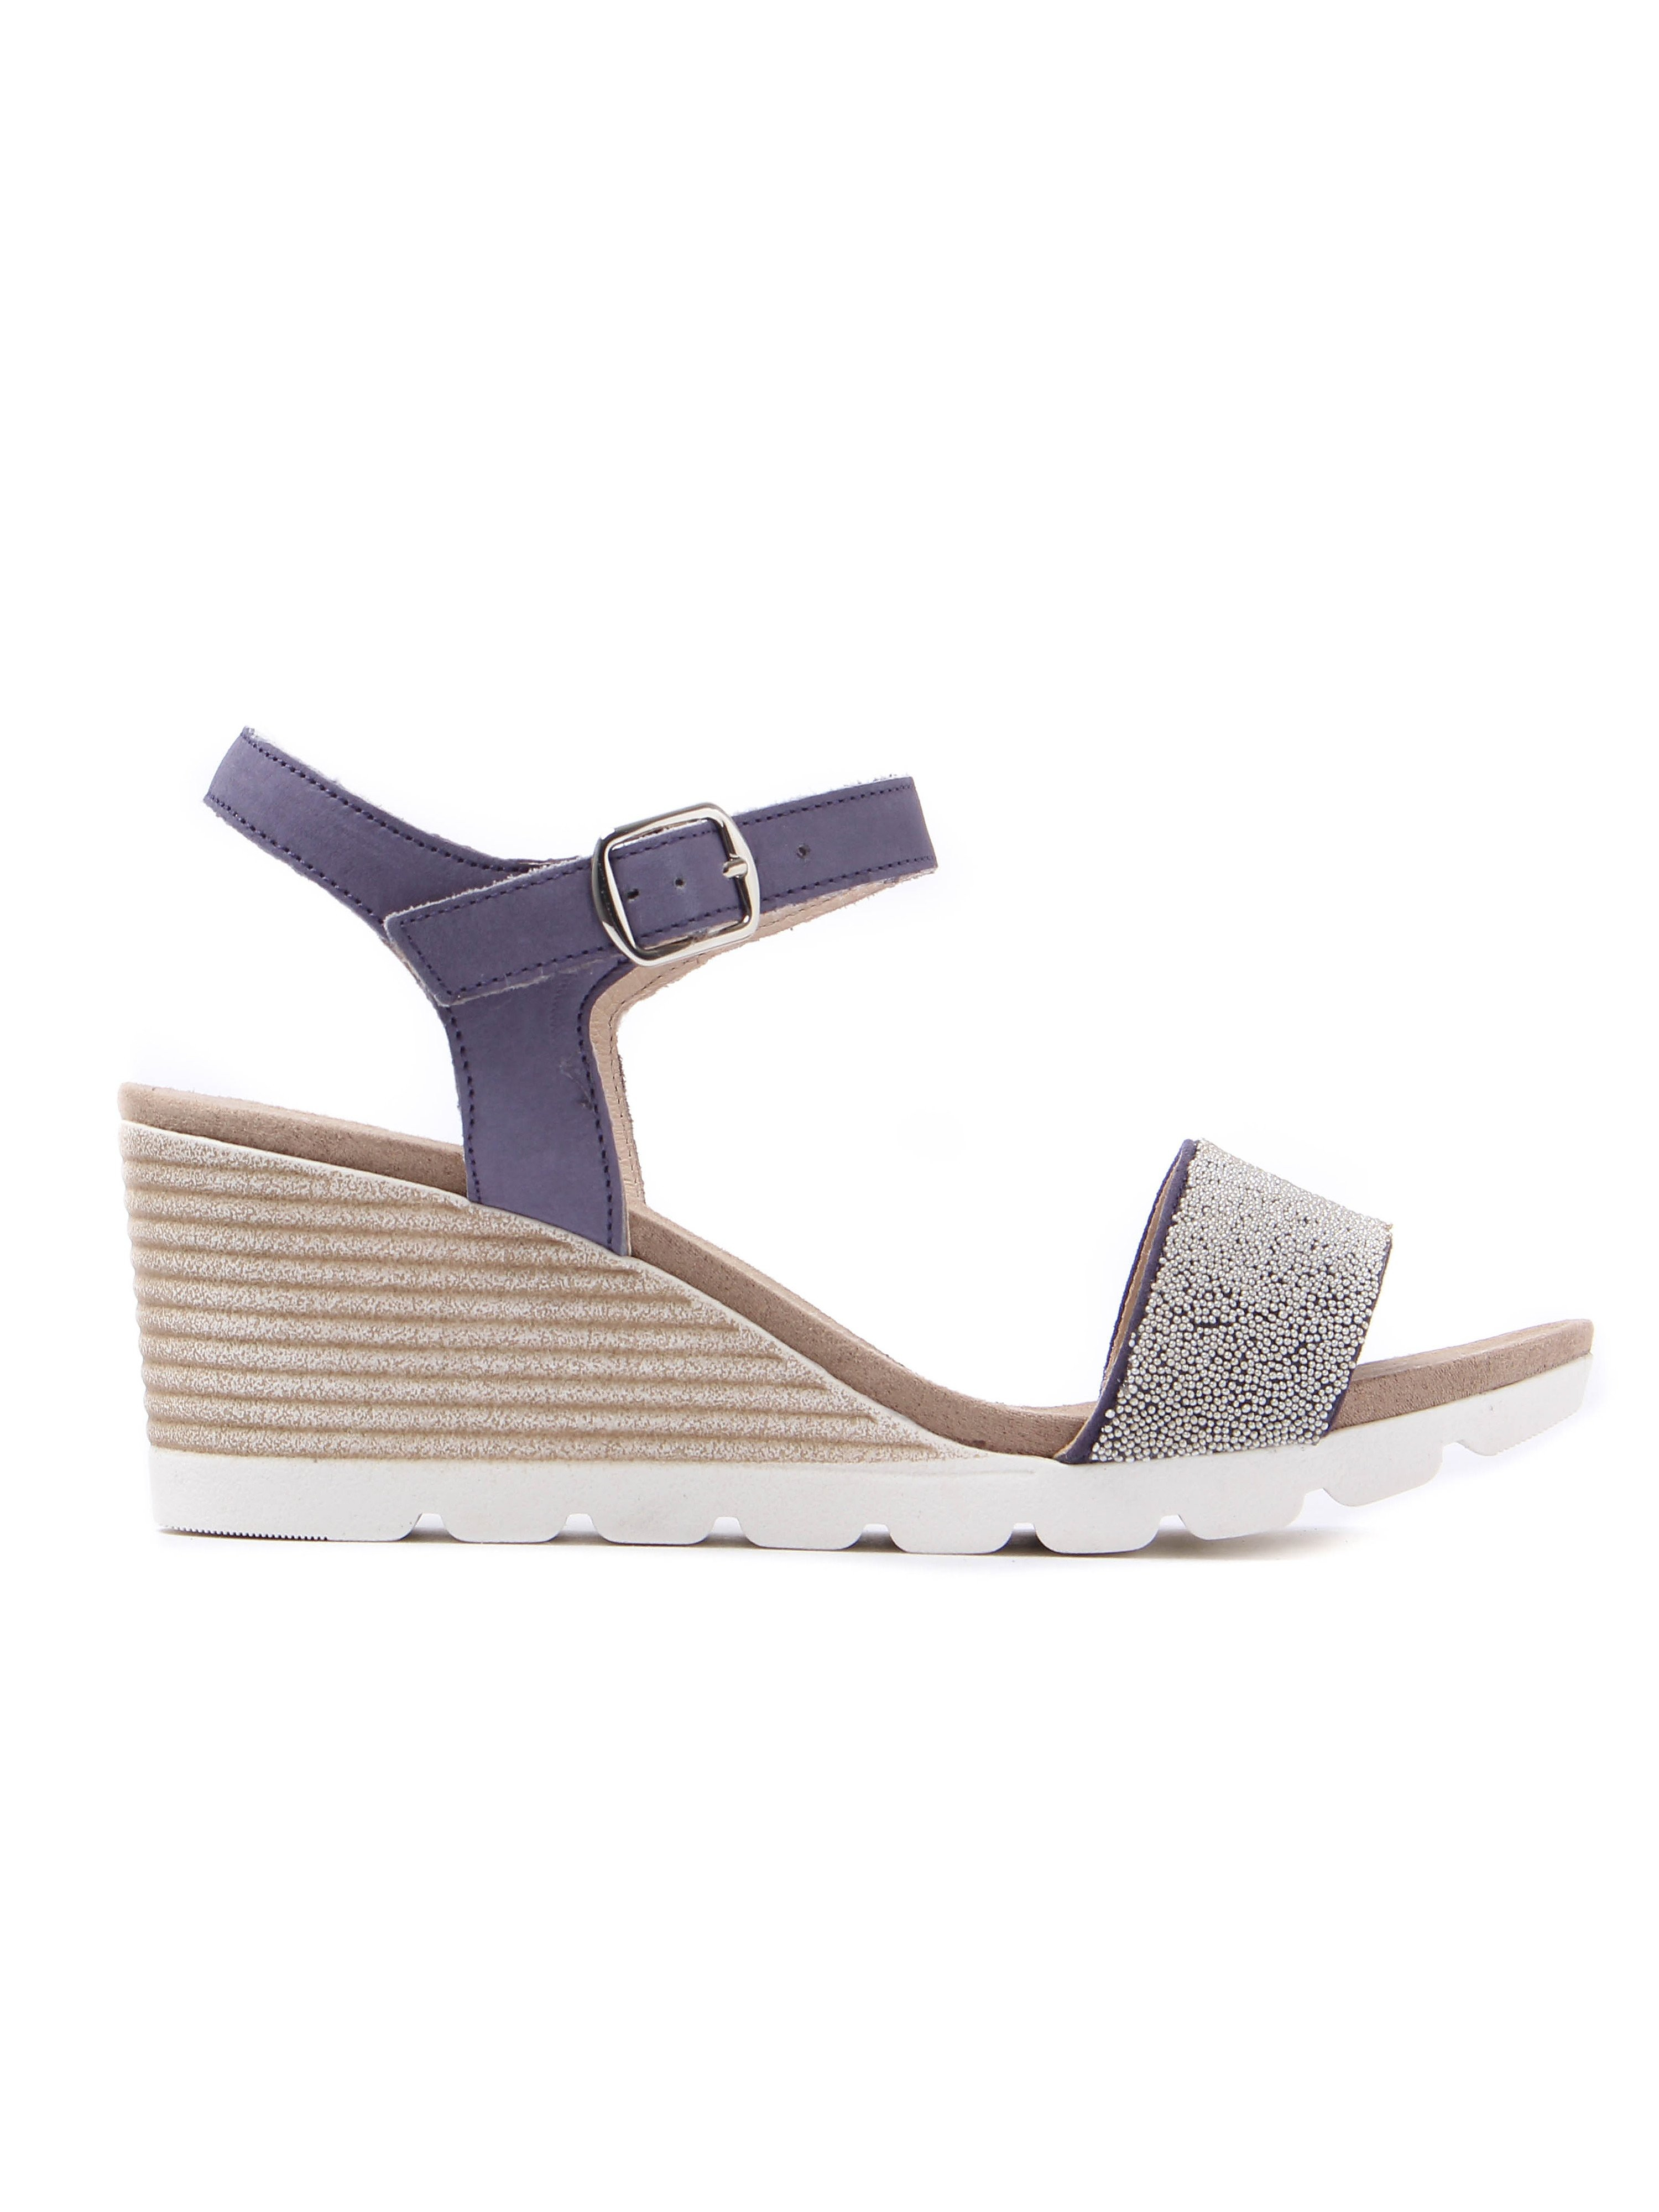 Caprice Women's Beaded Leather Wedge Sandals - Navy